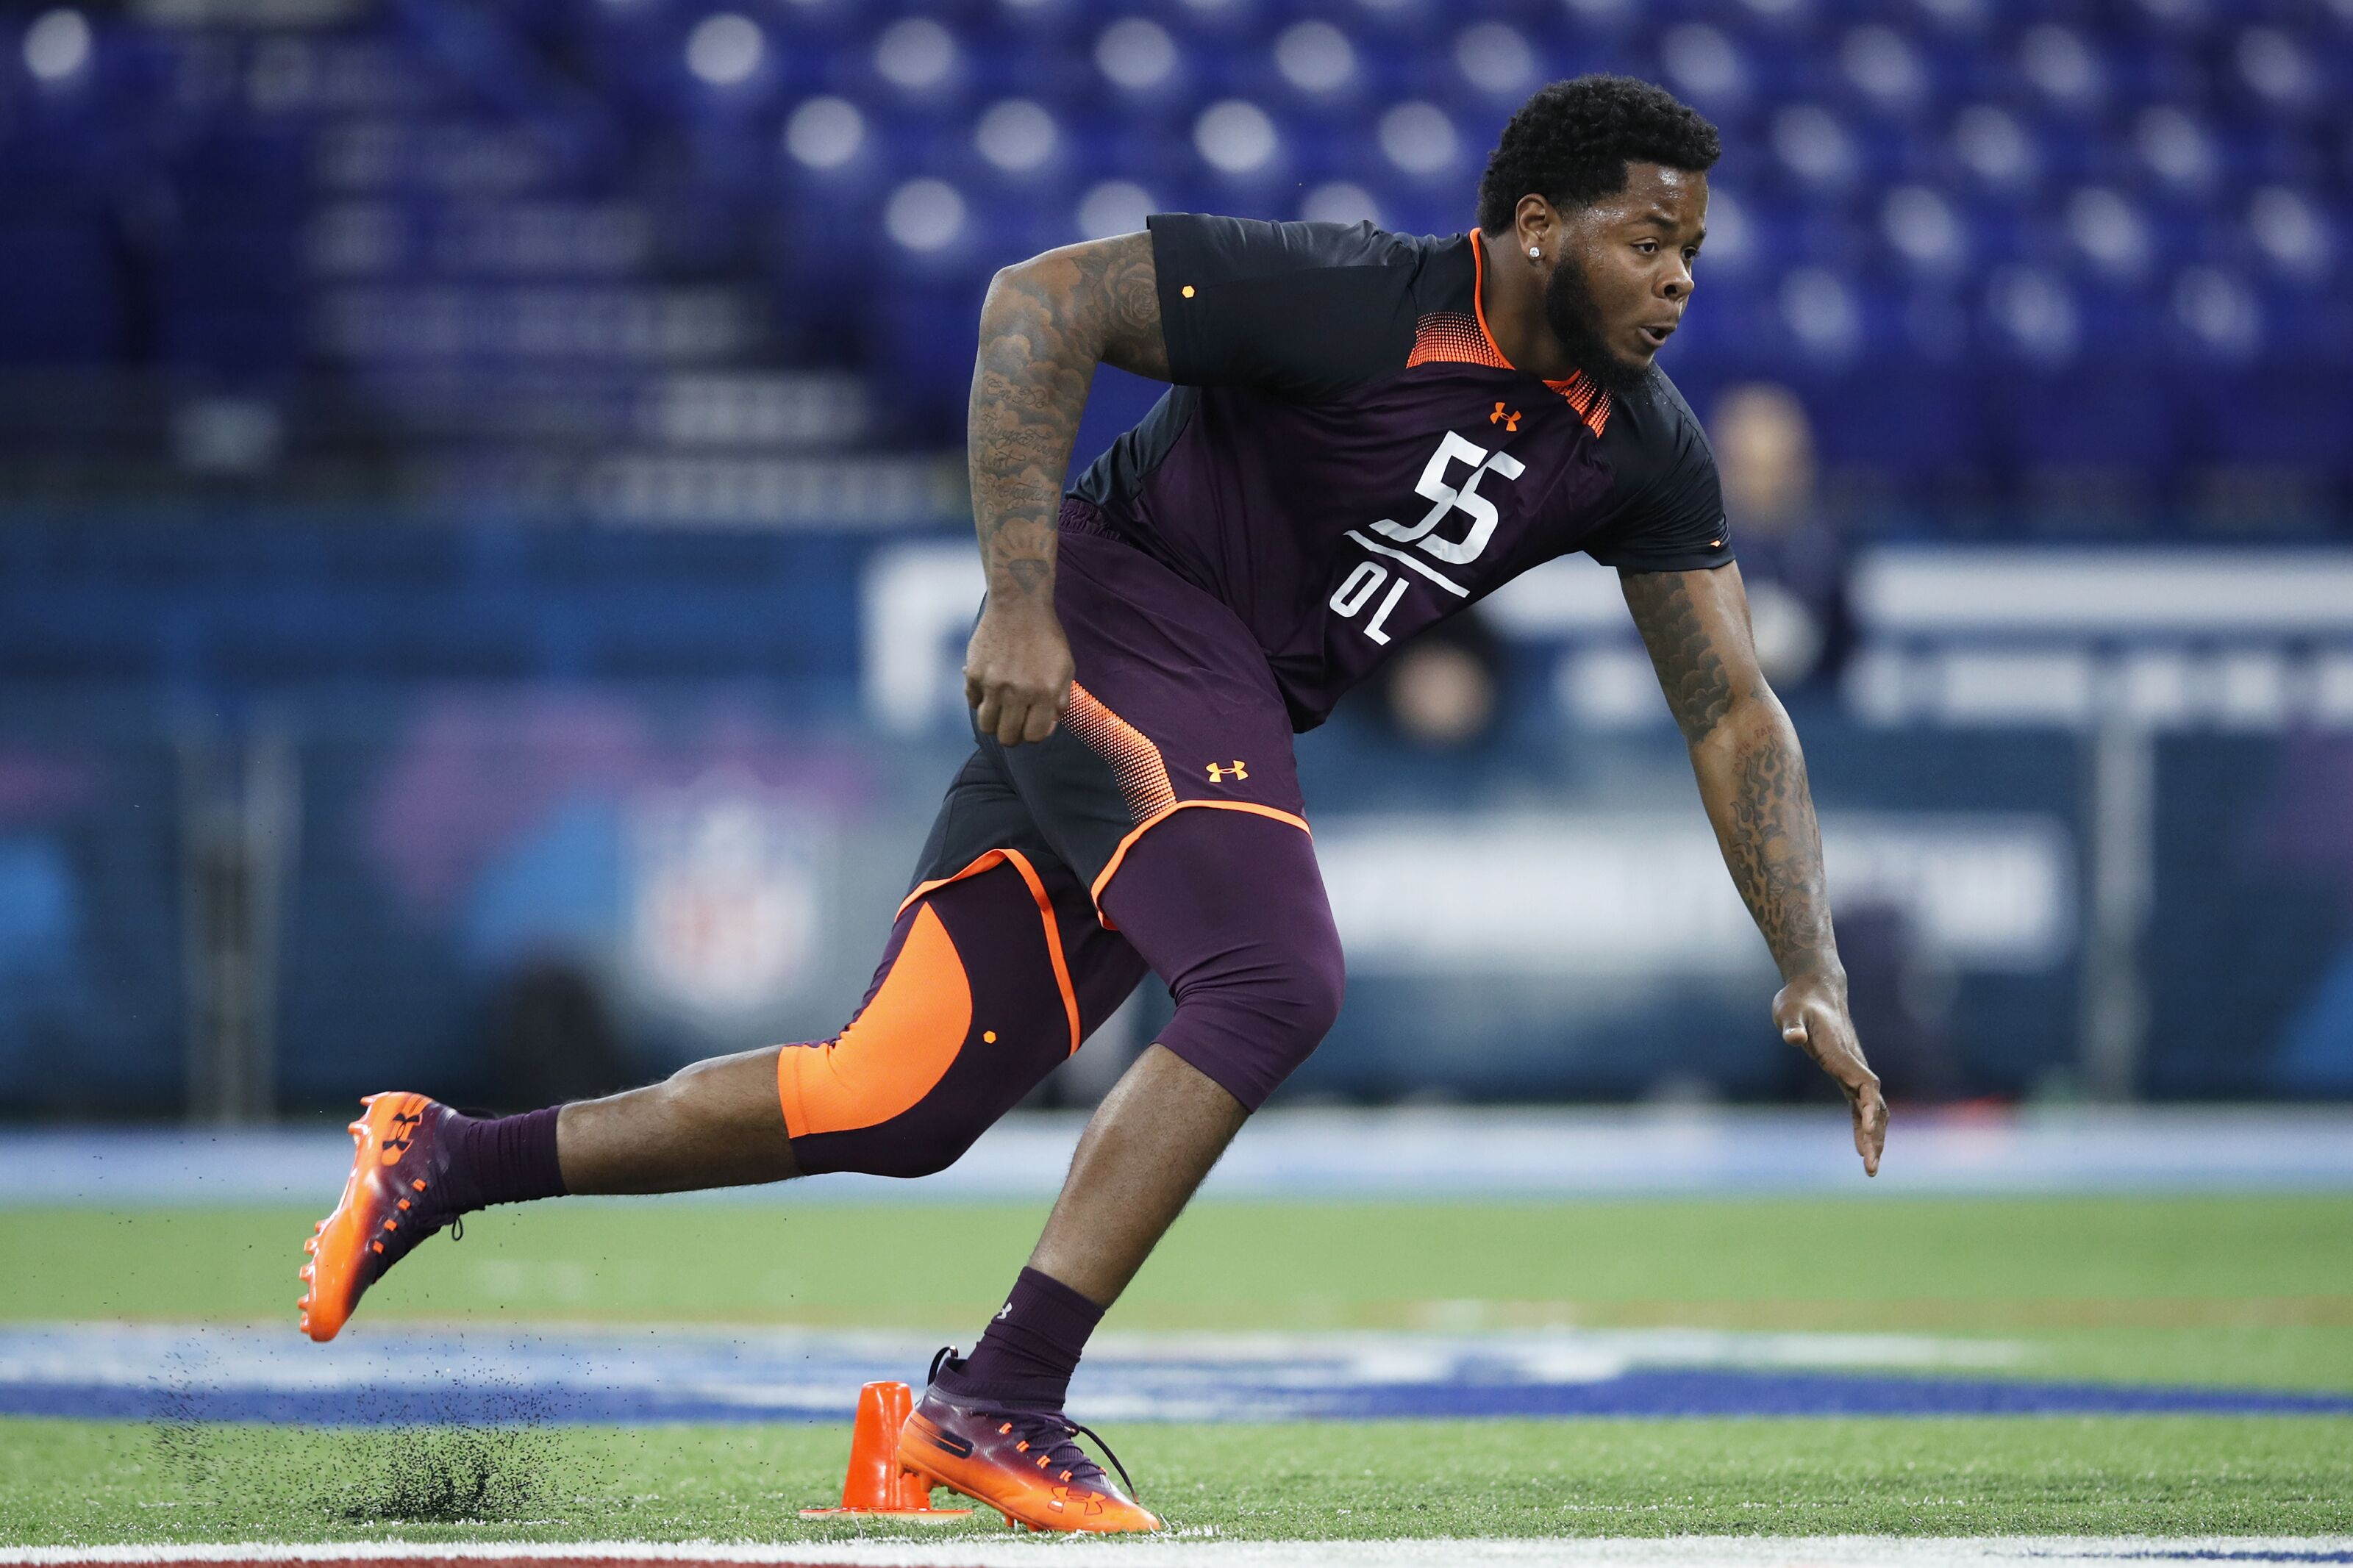 NFL Draft: Jawaan Taylor staying home, picked by Jags